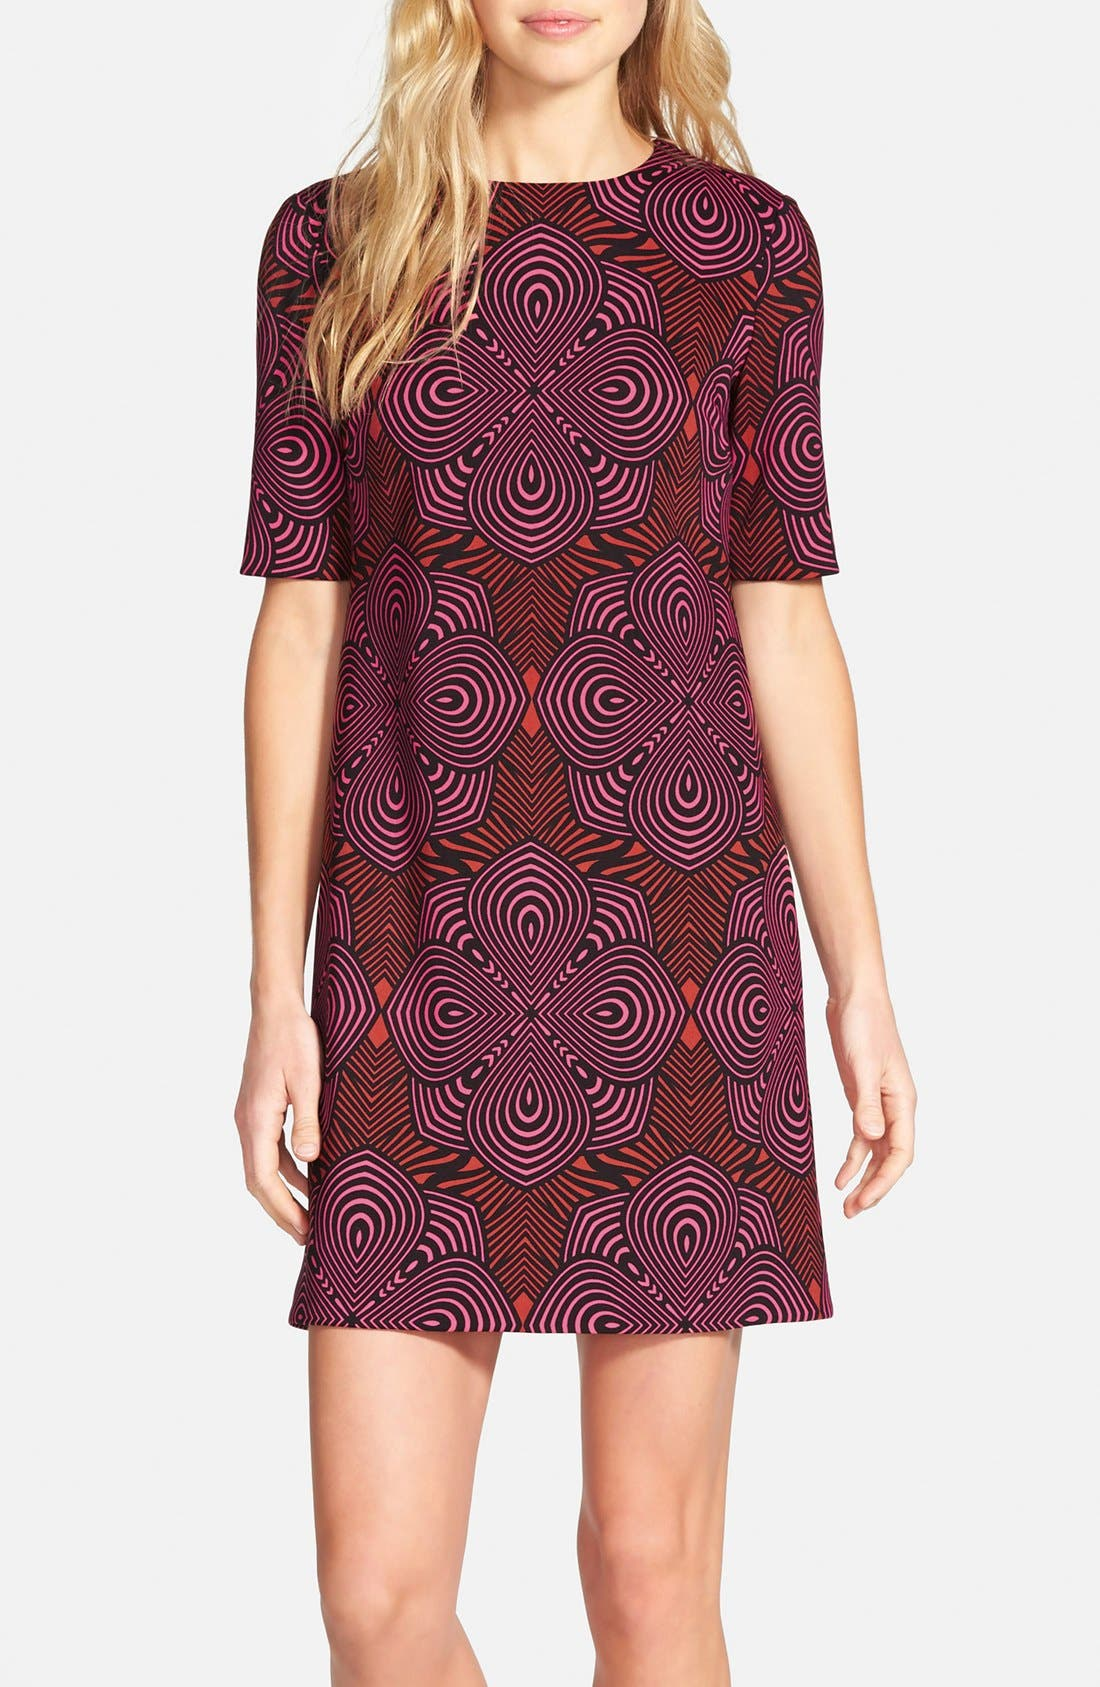 Alternate Image 1 Selected - Taylor Dresses Graphic Print Scuba Shift Dress (Online Only)